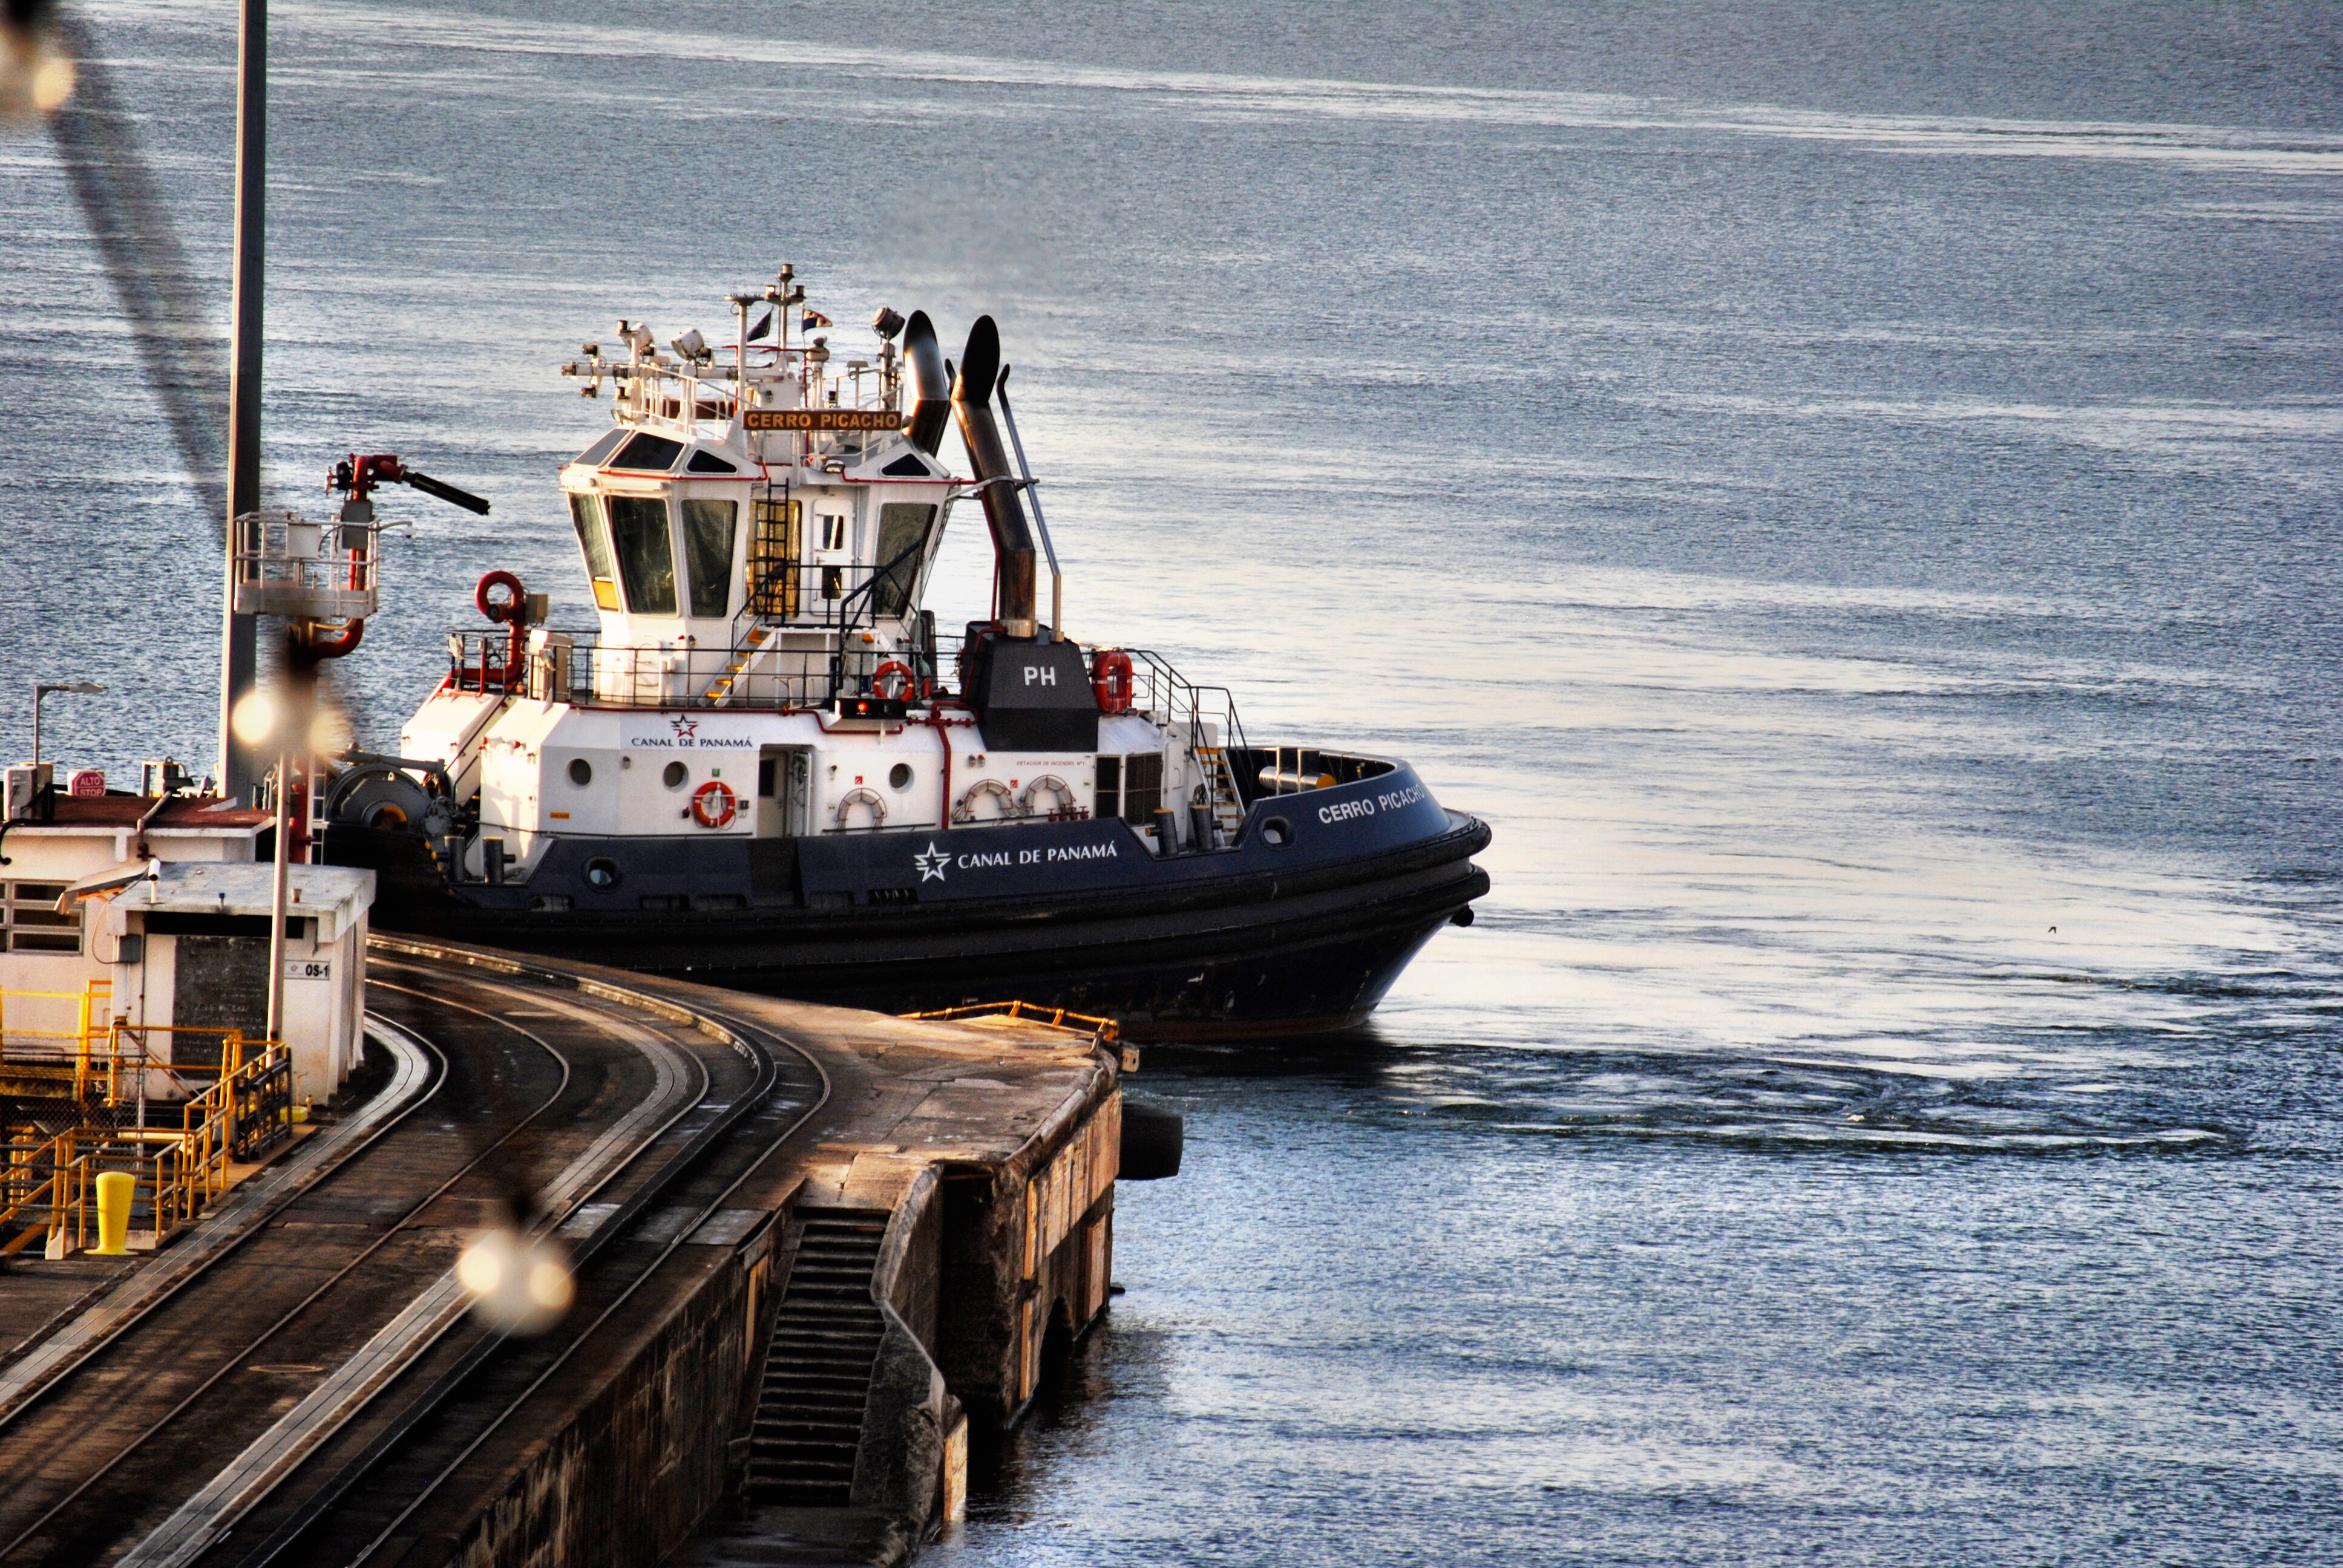 Tugboats help guide ships through the Panama Canal